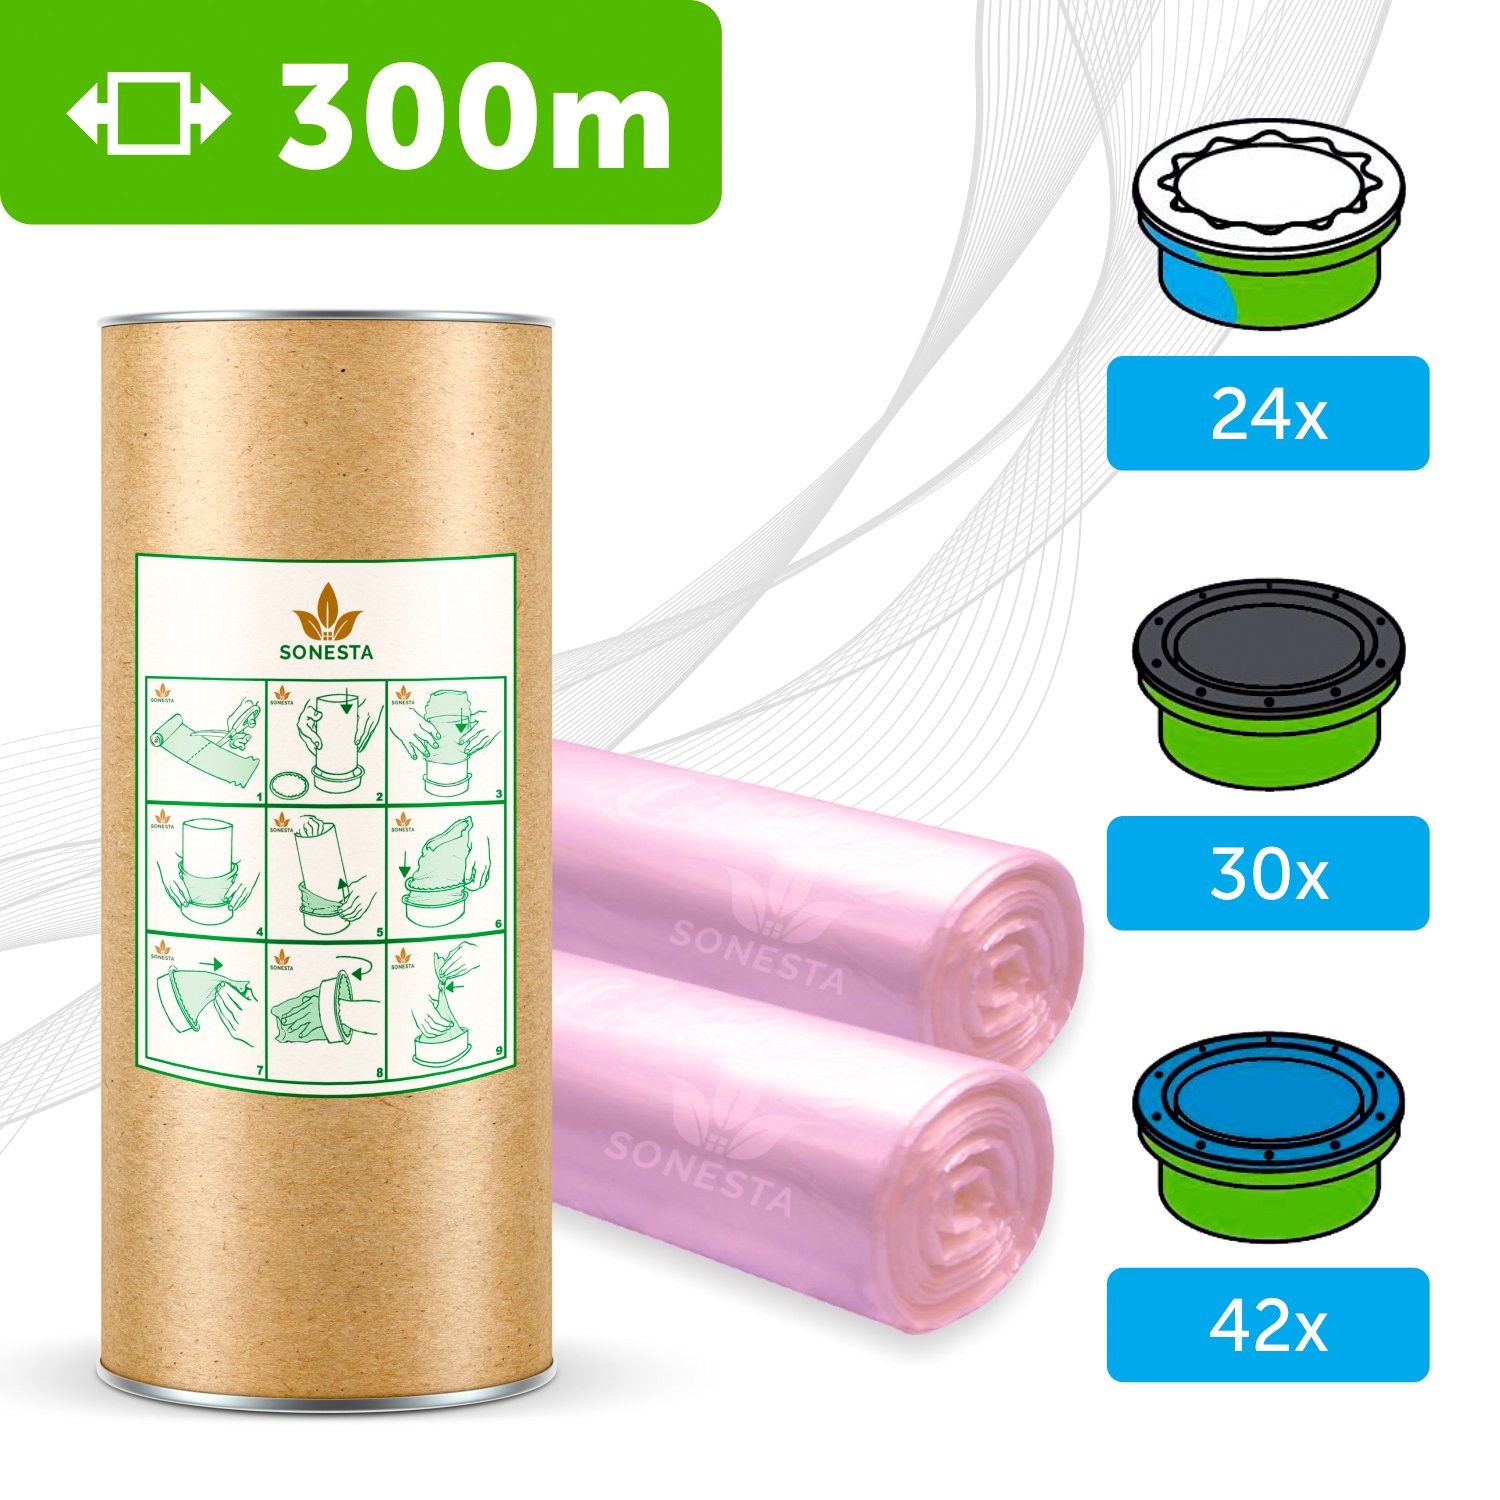 300m - ECO FRIENDLY liner compatible with Tommee Tippee Sangenic | Angelcare | Litter Locker II | Equivalent to 24 Sangenic fits all tubs + cardboard roll for easy refilling and storage SONESTA